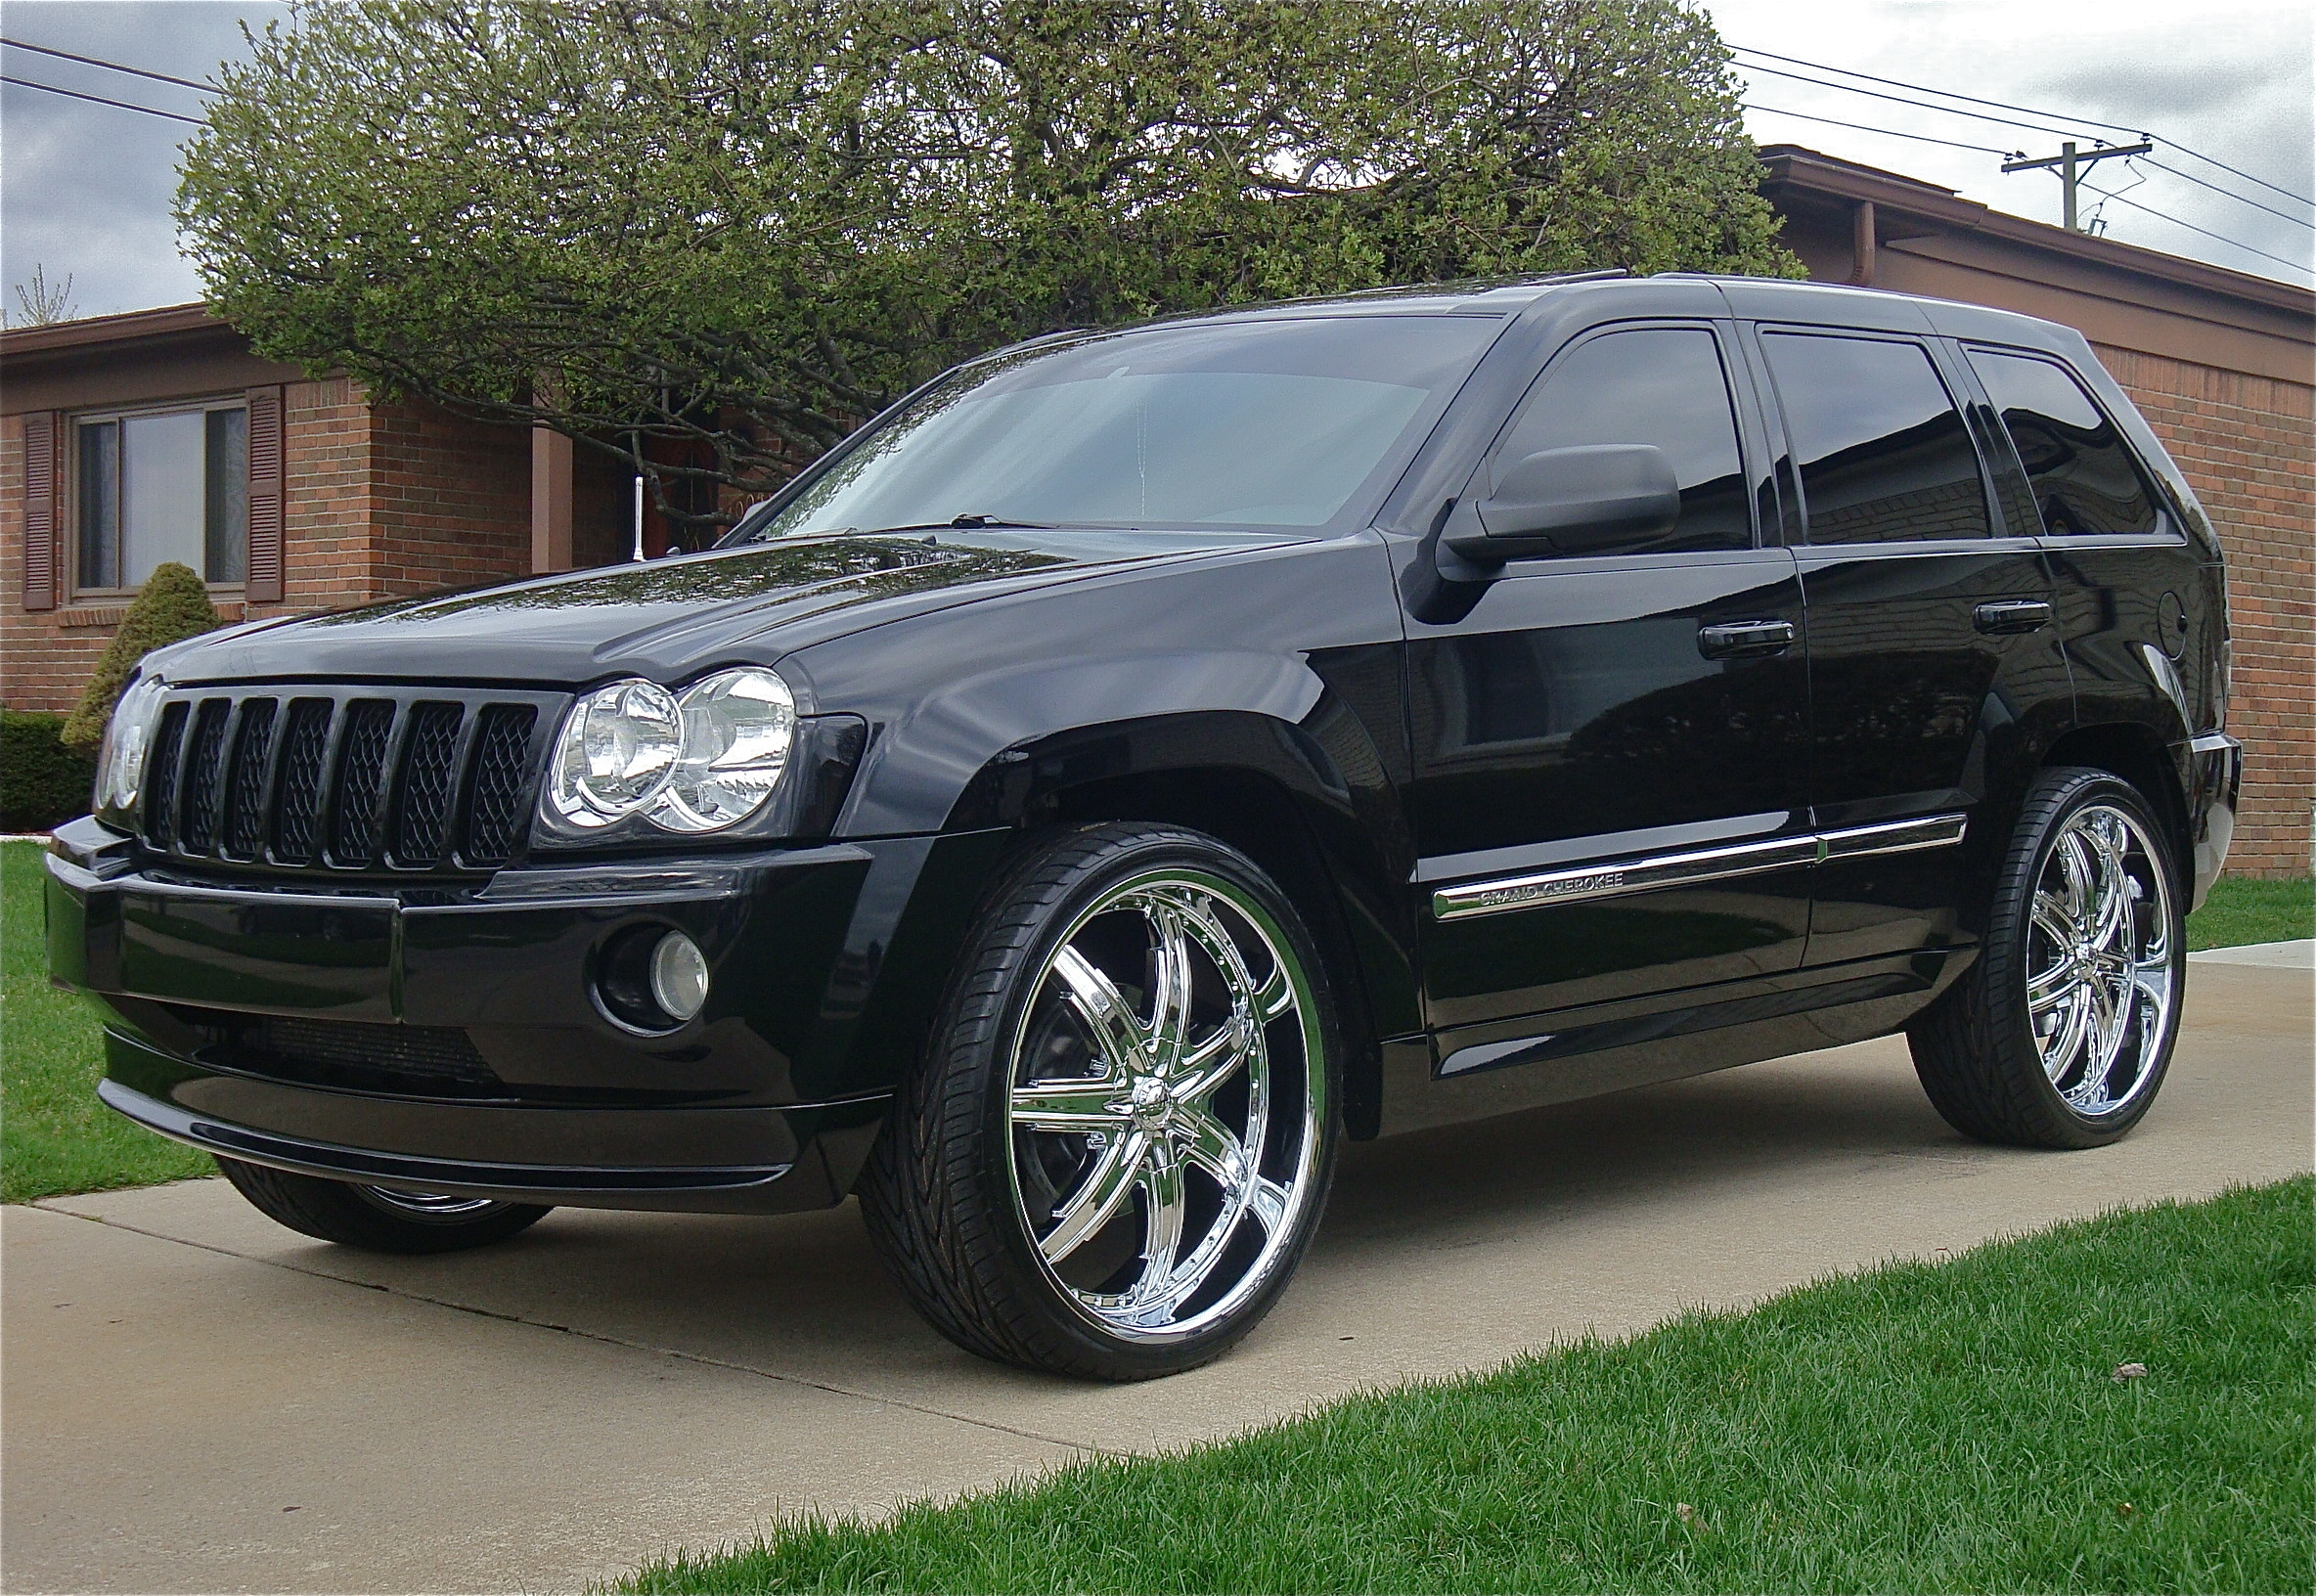 grandprixgt74 2007 jeep grand cherokee specs, photos, modification